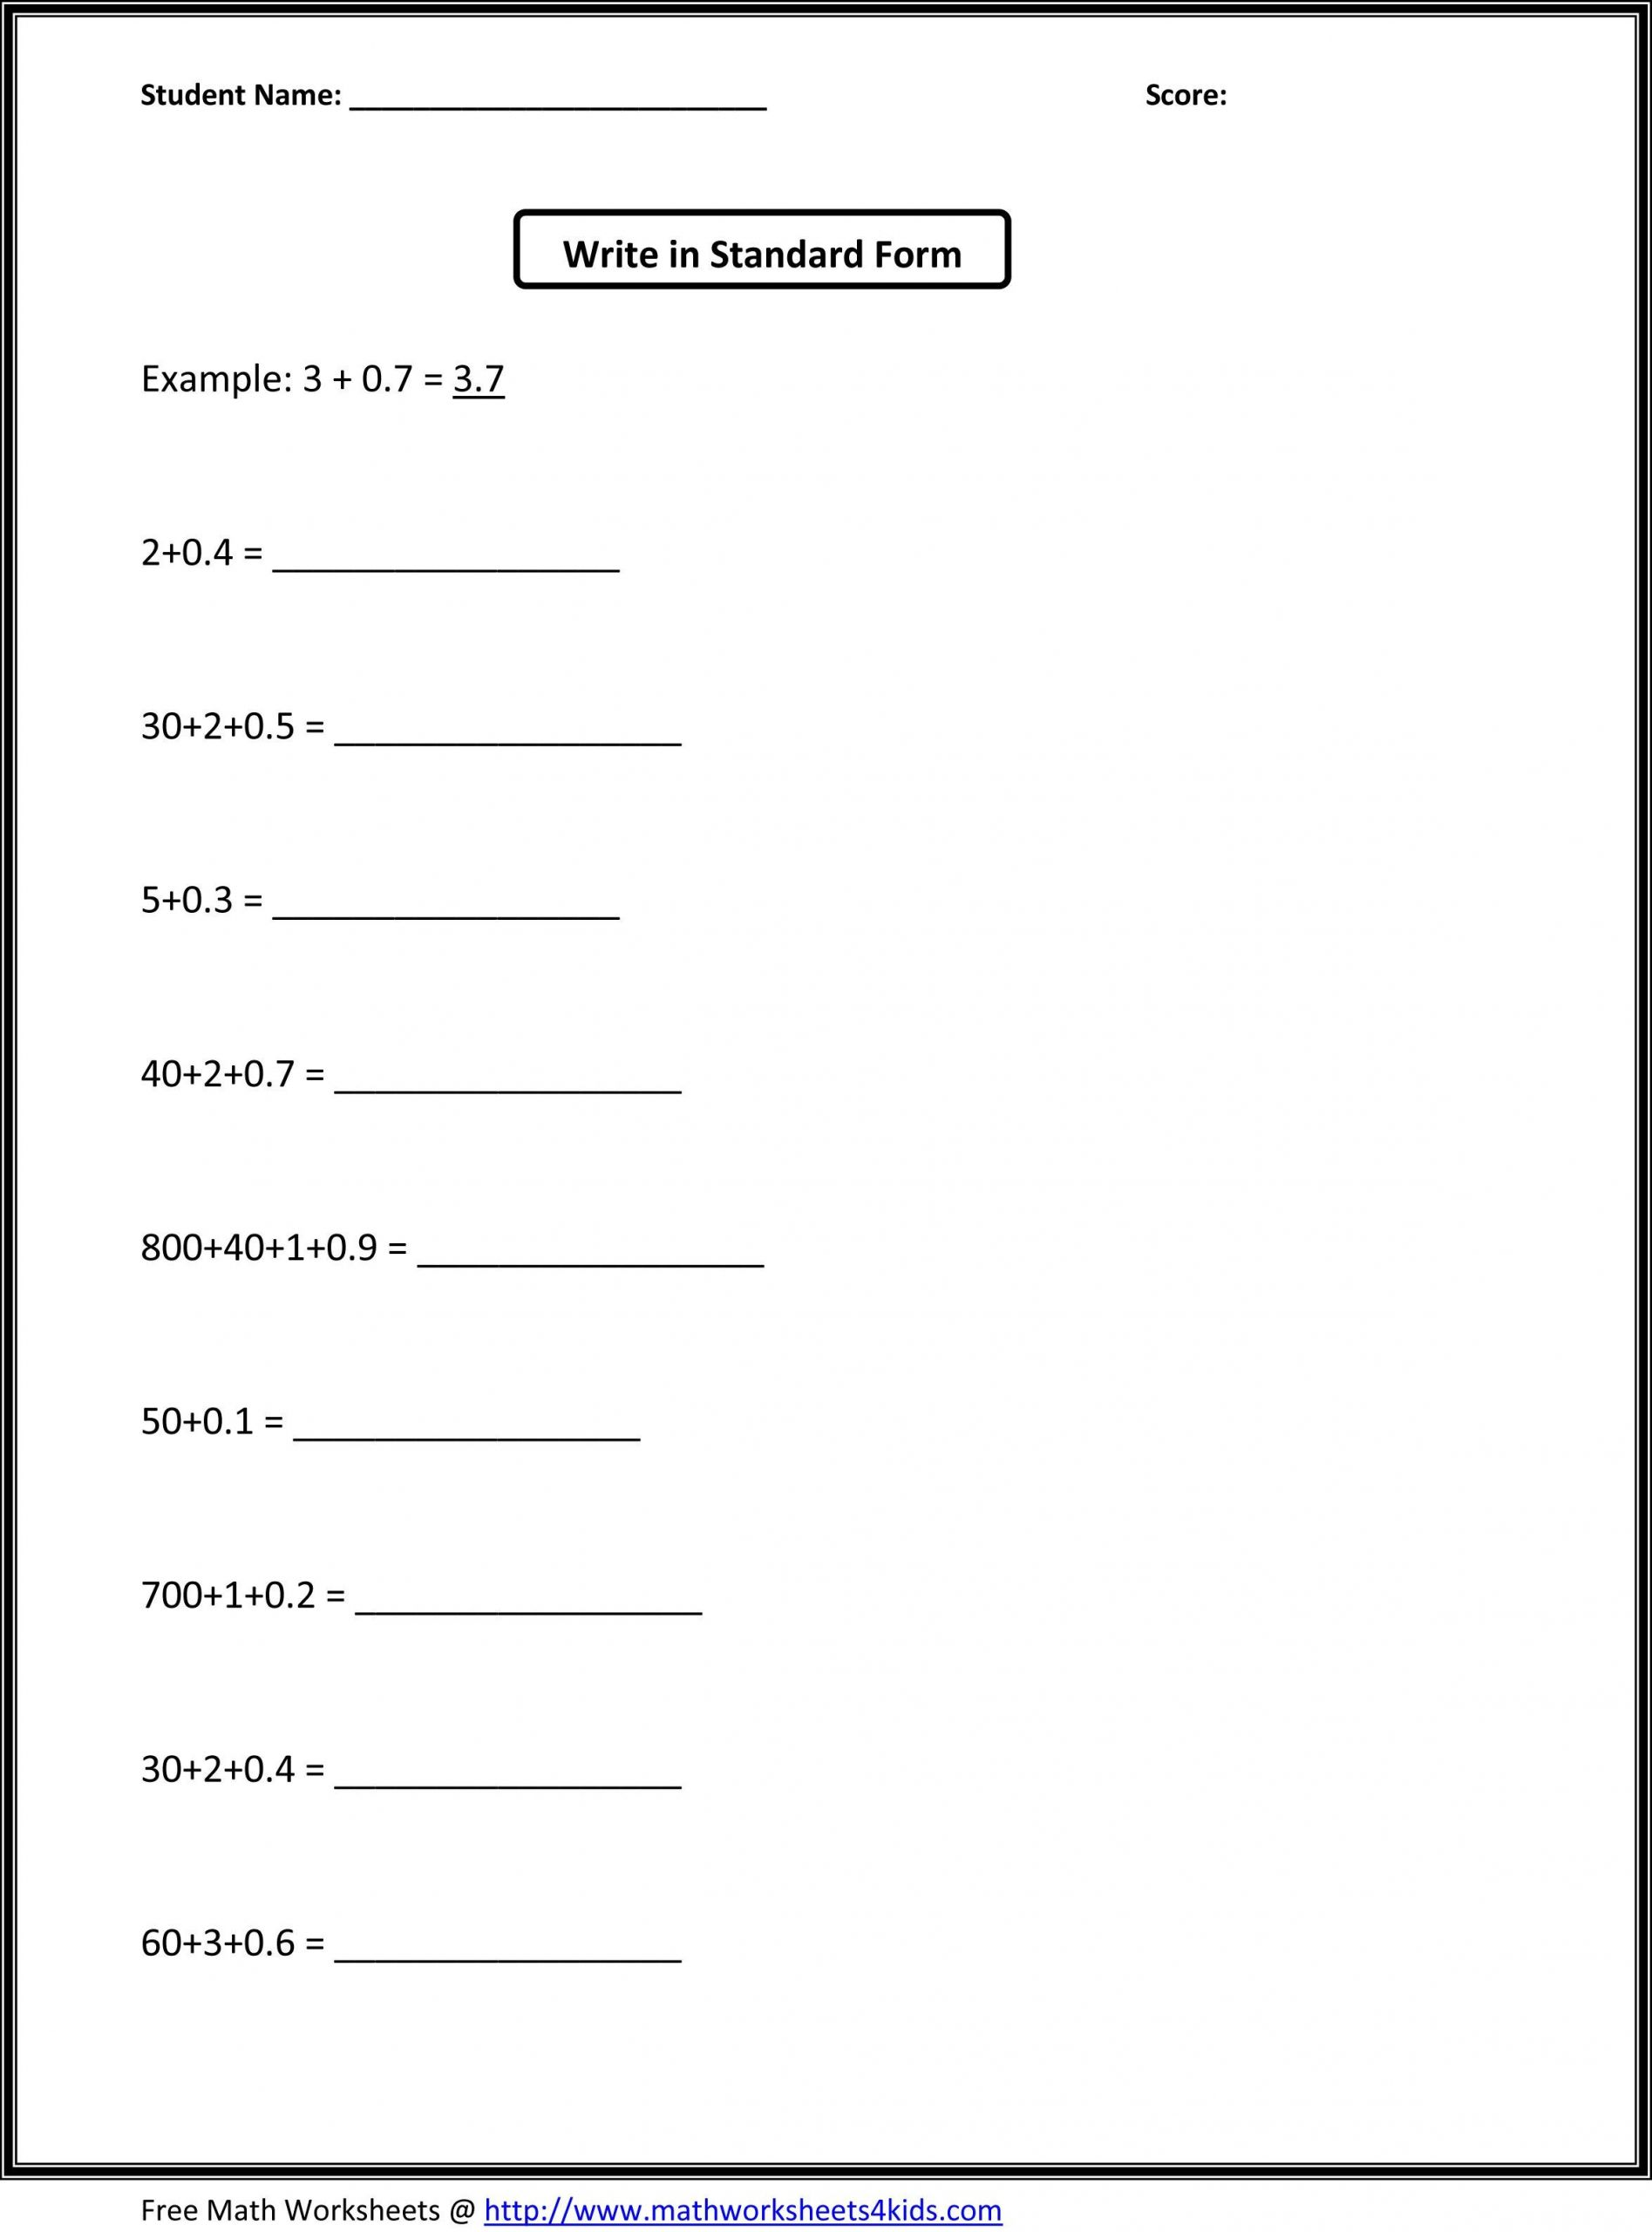 hight resolution of 4 Free Math Worksheets Third Grade 3 Measurement Converting Yards Feet  Inches Easy - apocalomegaproductions.com